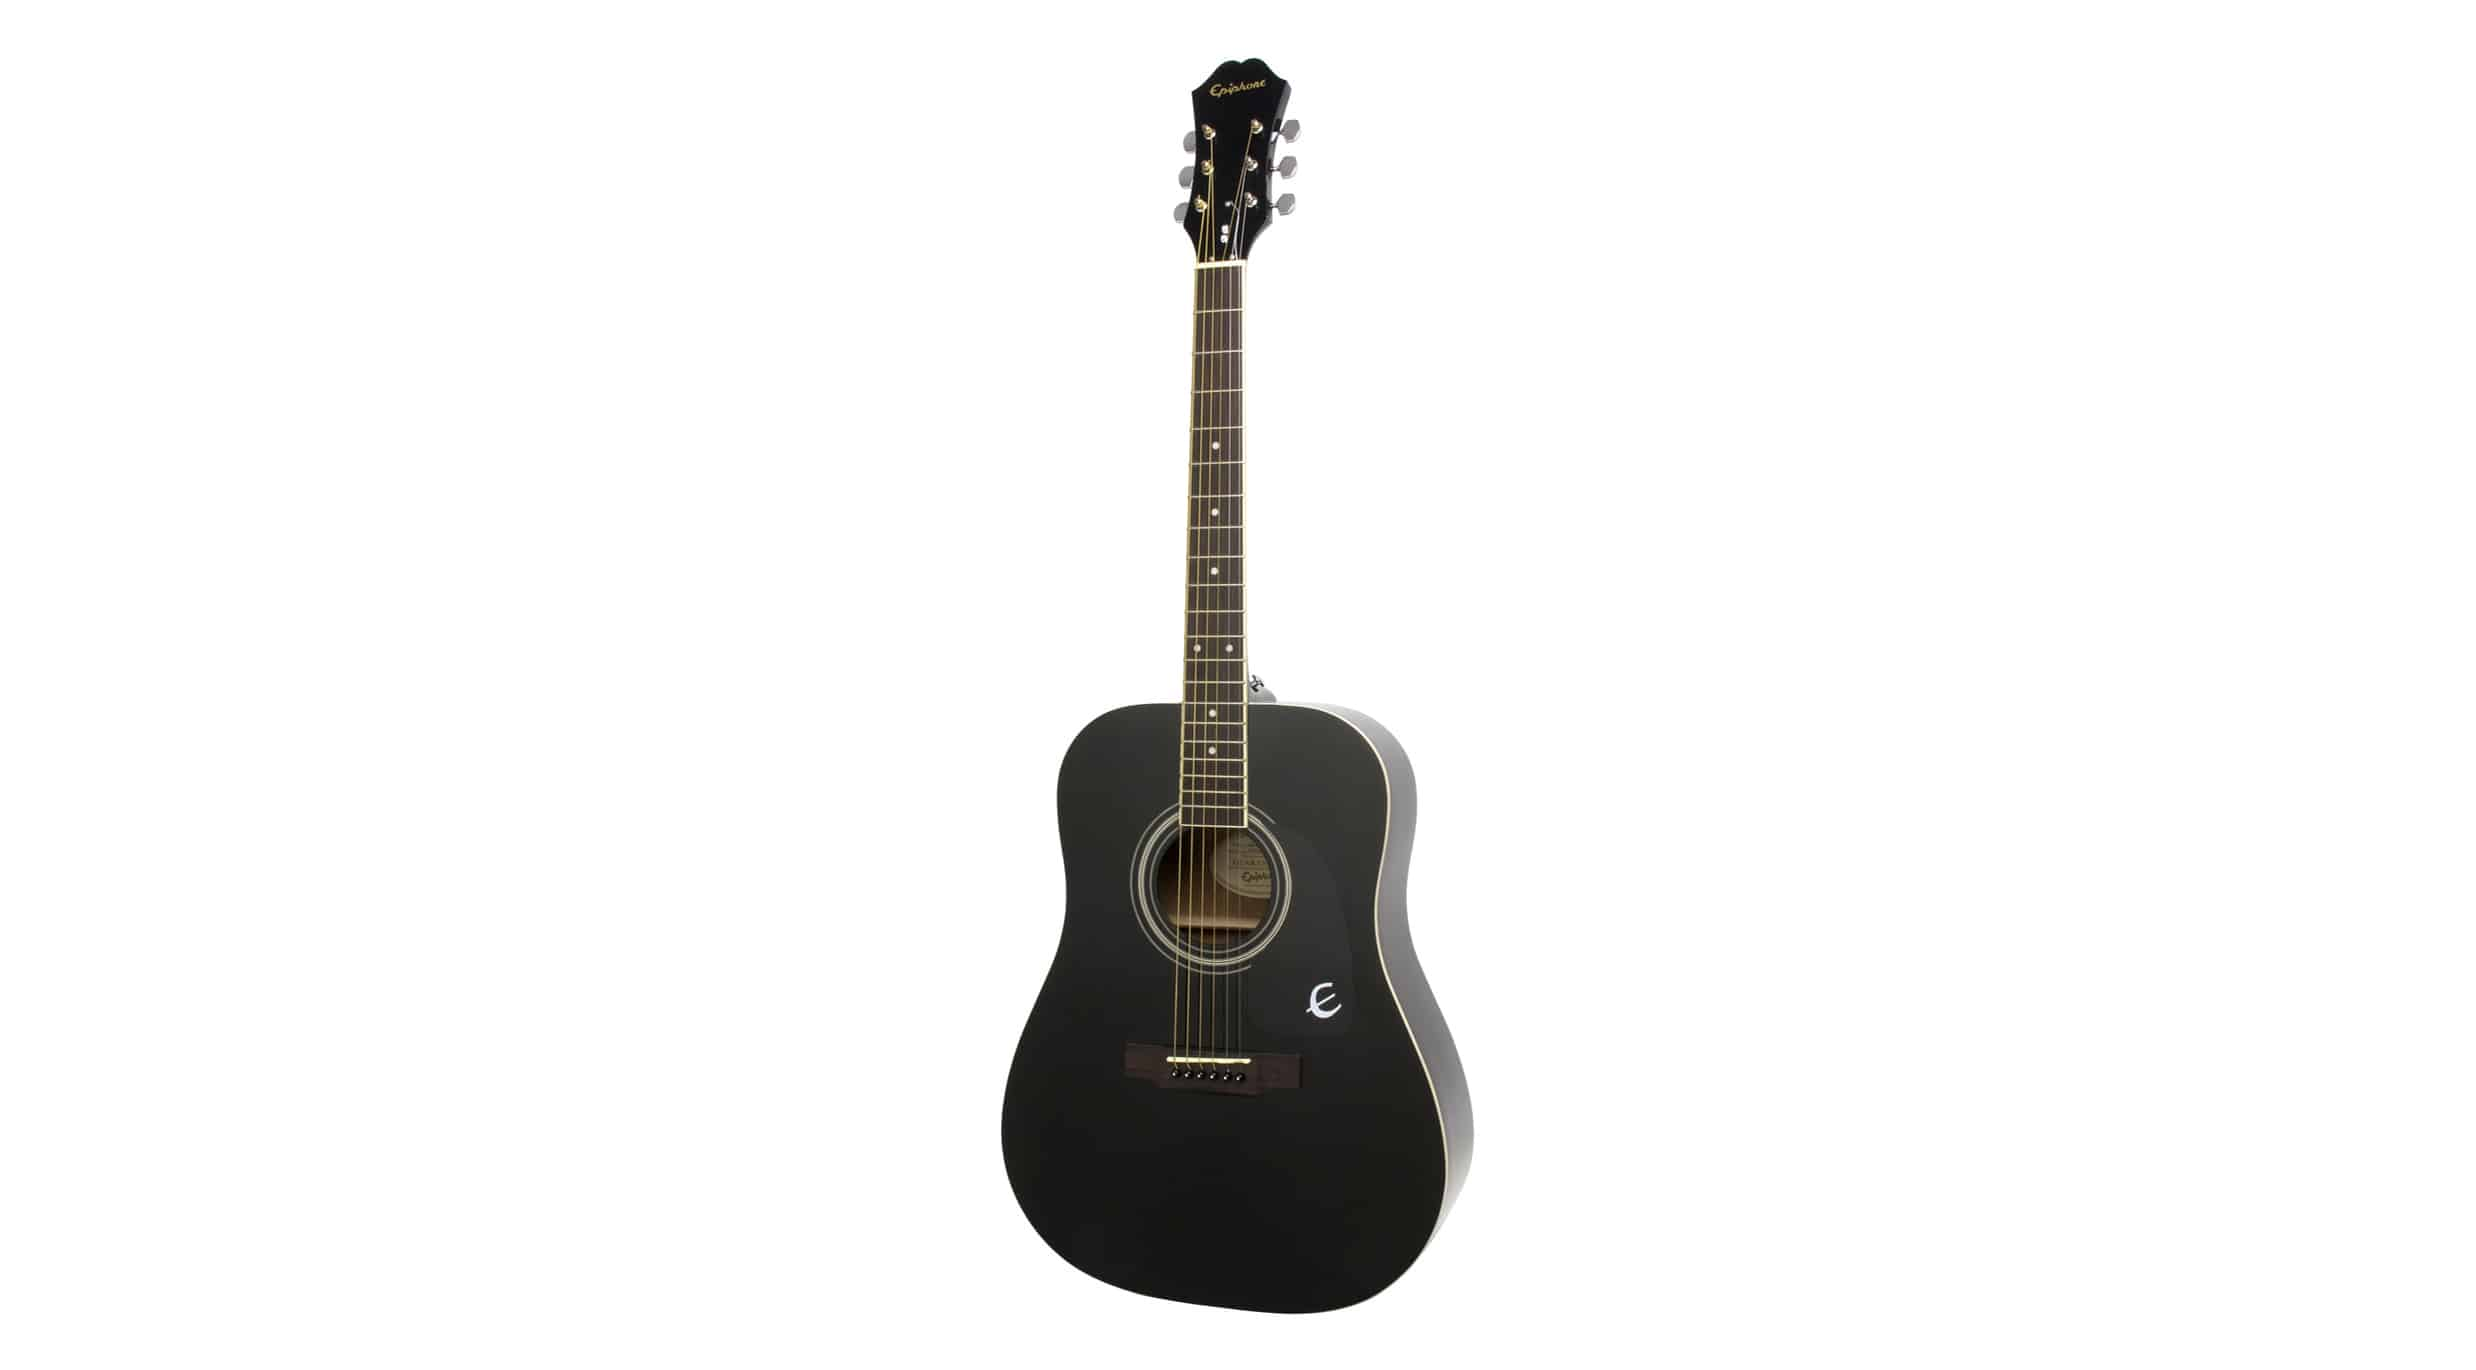 Epiphone DR 100 Acoustic Guitar Review